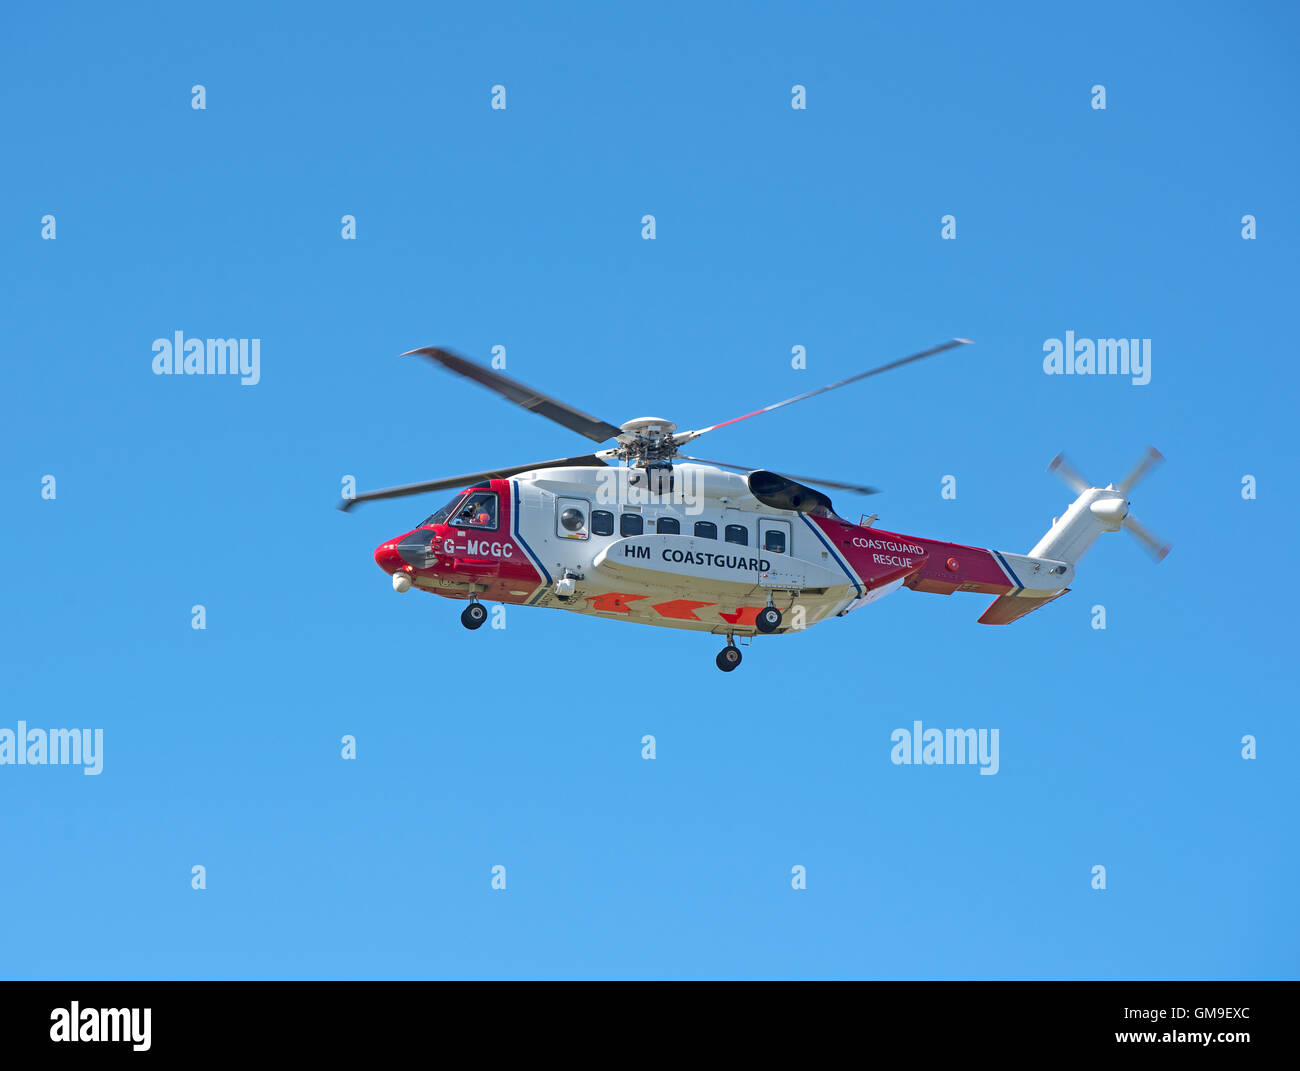 Sikorsky S-92A Coastguard SAR Helicopter (G-MCGG) based at Inverness. SCO 11,188. - Stock Image